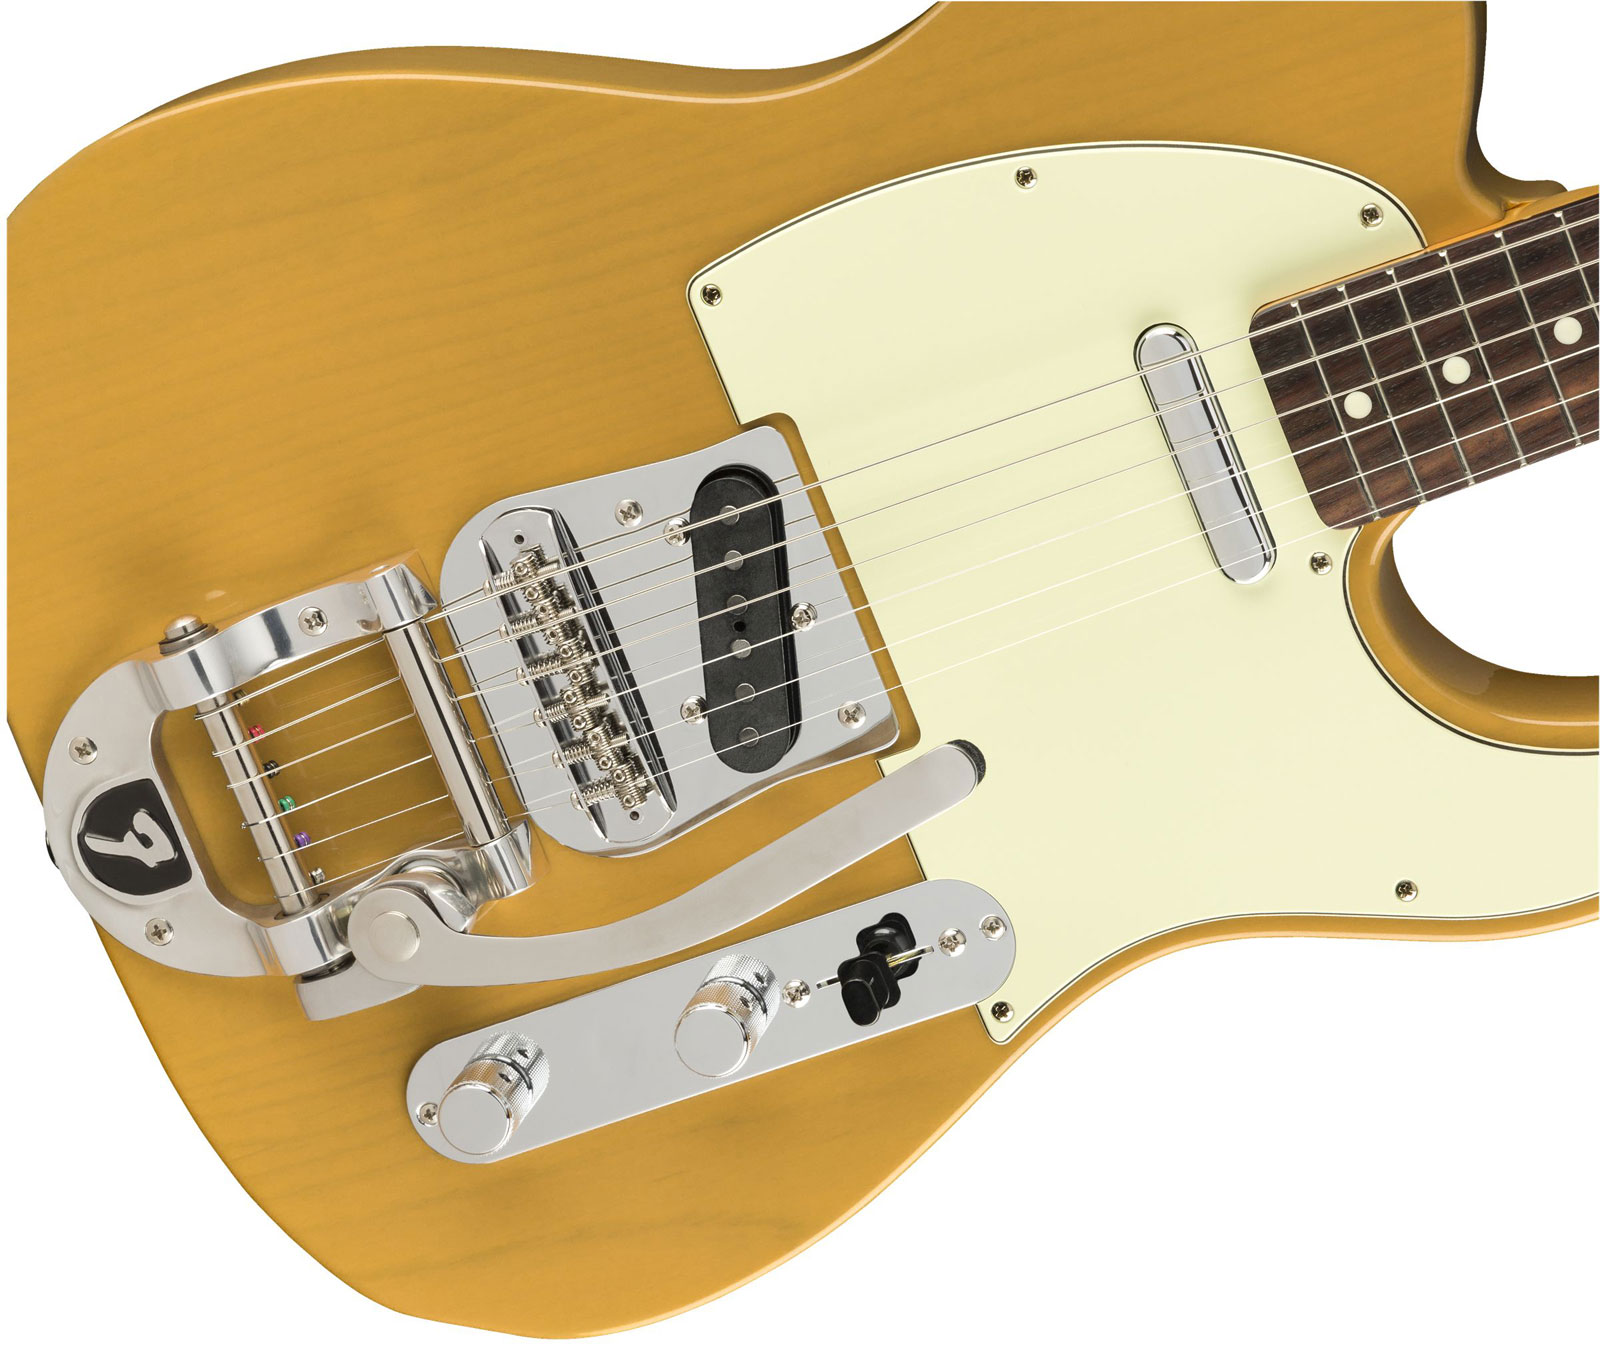 LIMITED EDITION MADE IN JAPAN TRADITIONAL 60S TELECASTER BIGSBY RW BUTTERSCOTCH BLONDE